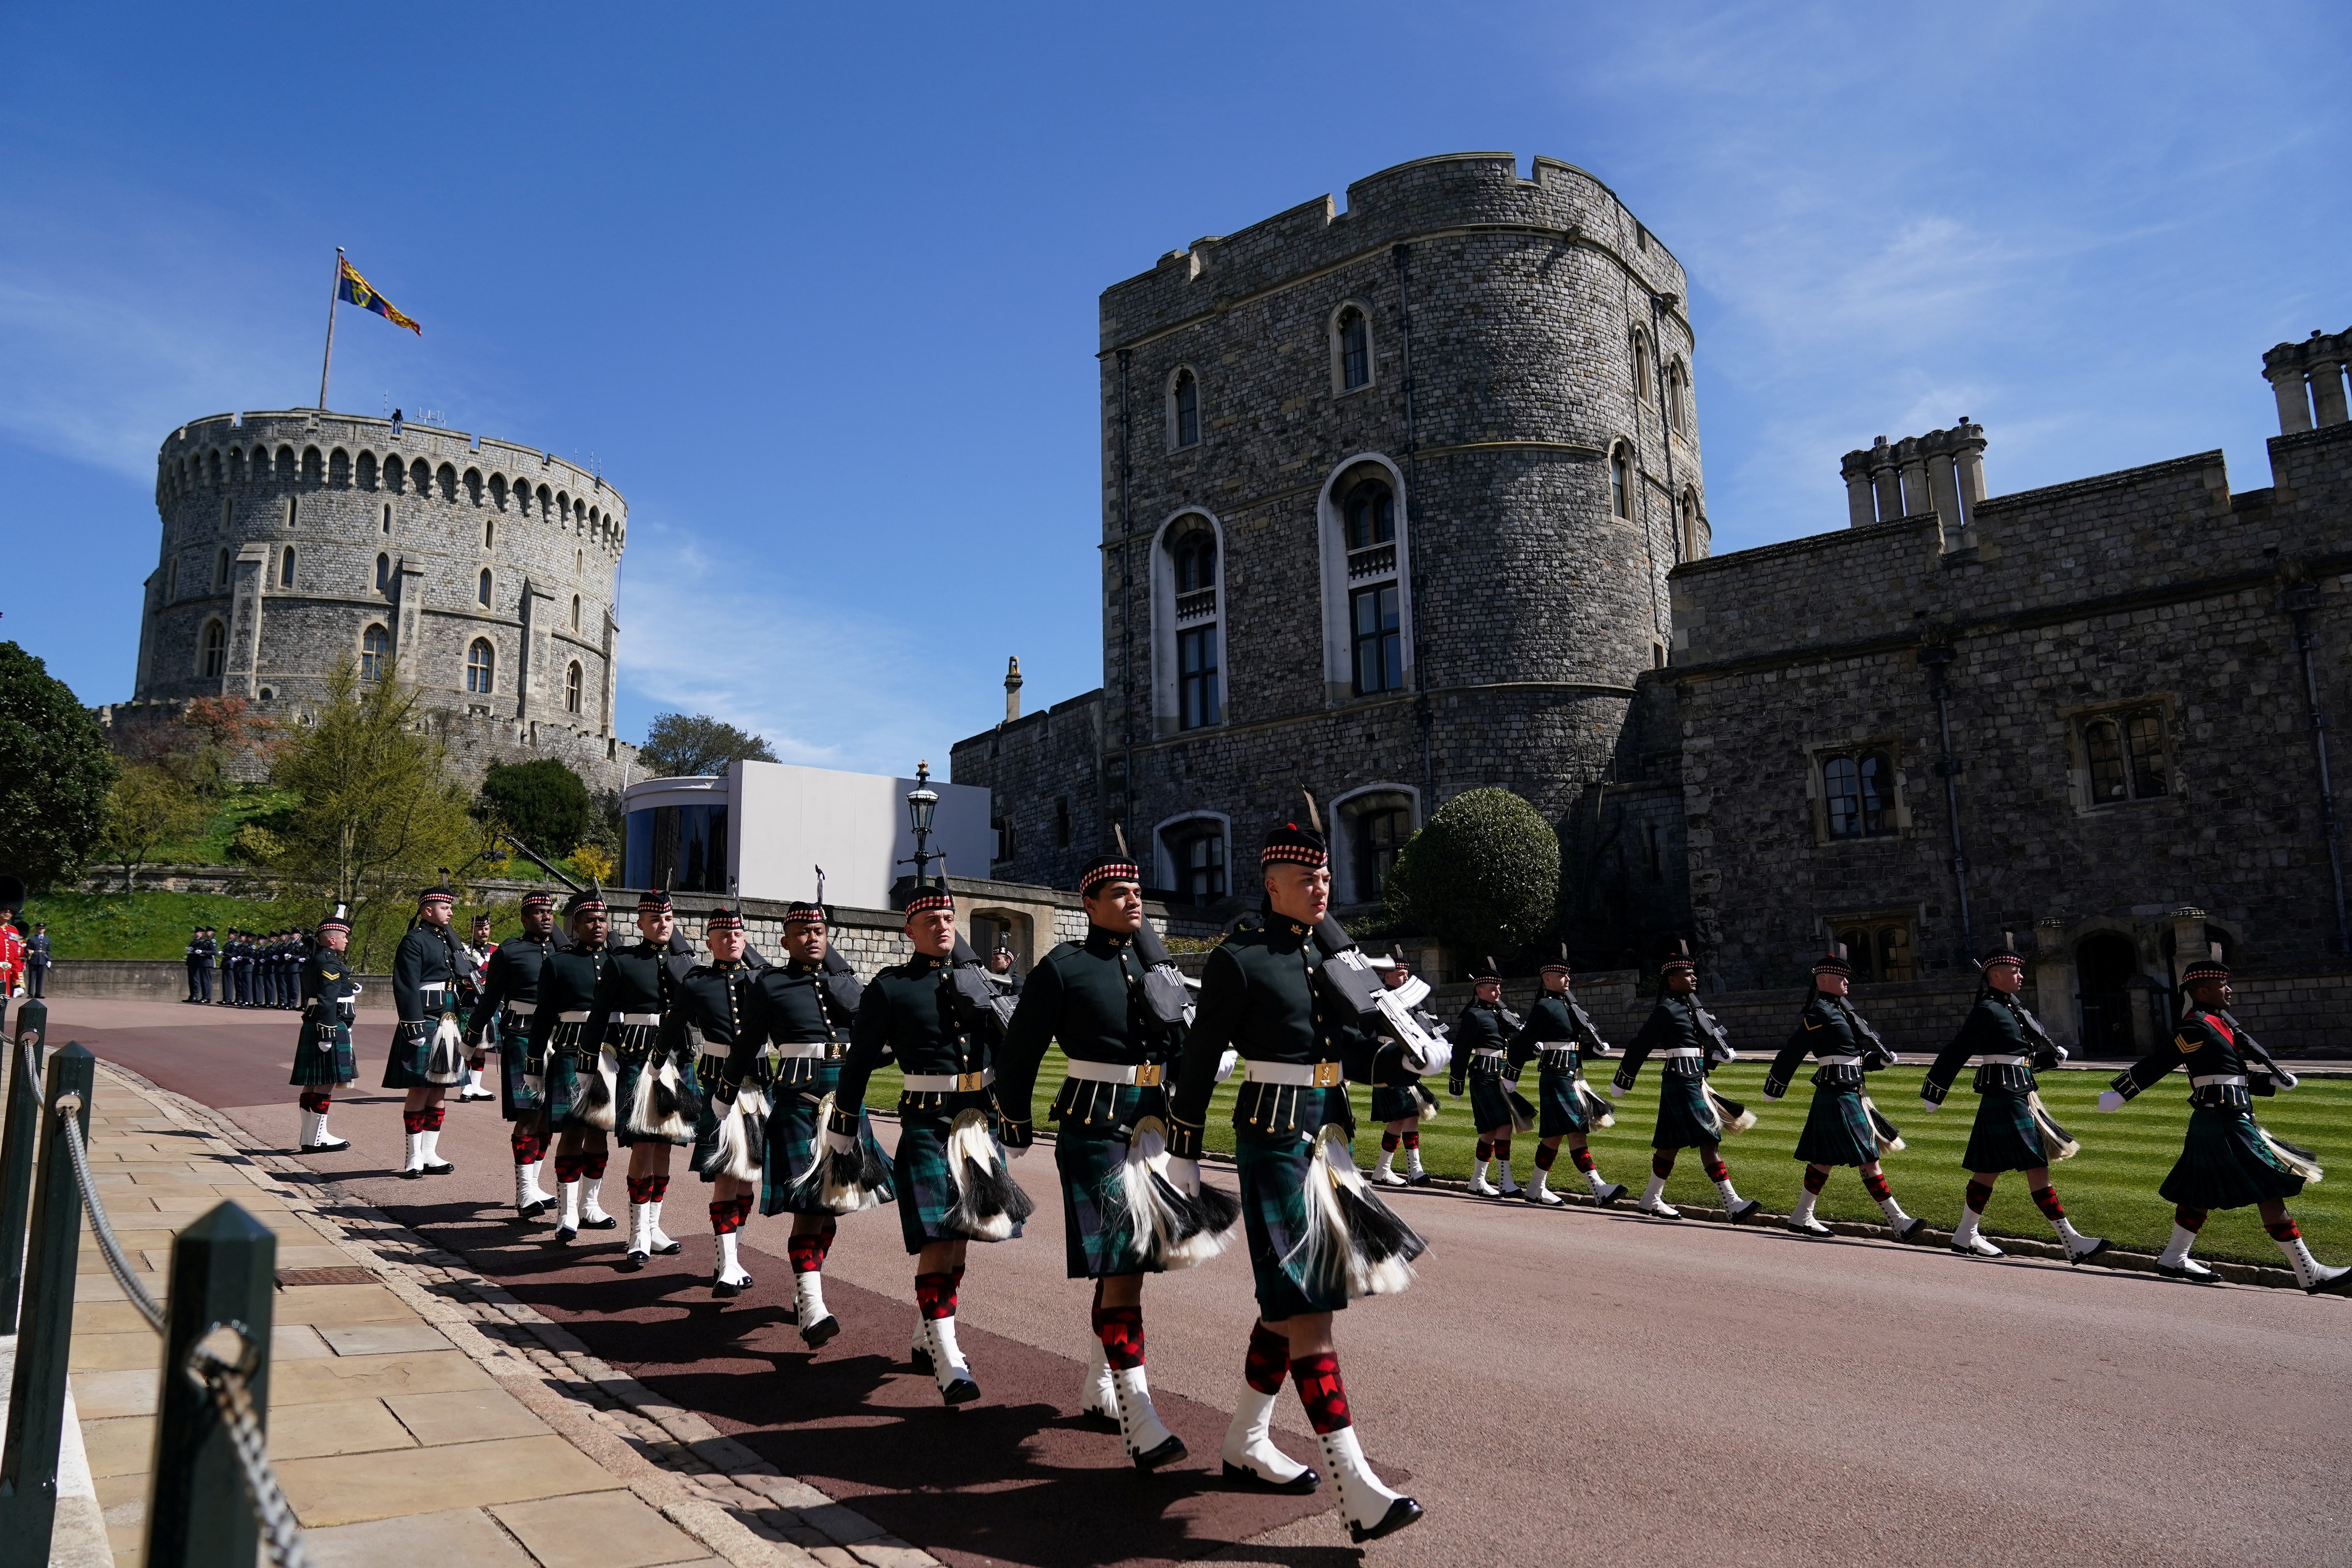 Members of the military arrive for the funeral of Britain's Prince Philip in Windsor Castle, Britain April 17, 2021. Victoria Jones/Pool via REUTERS